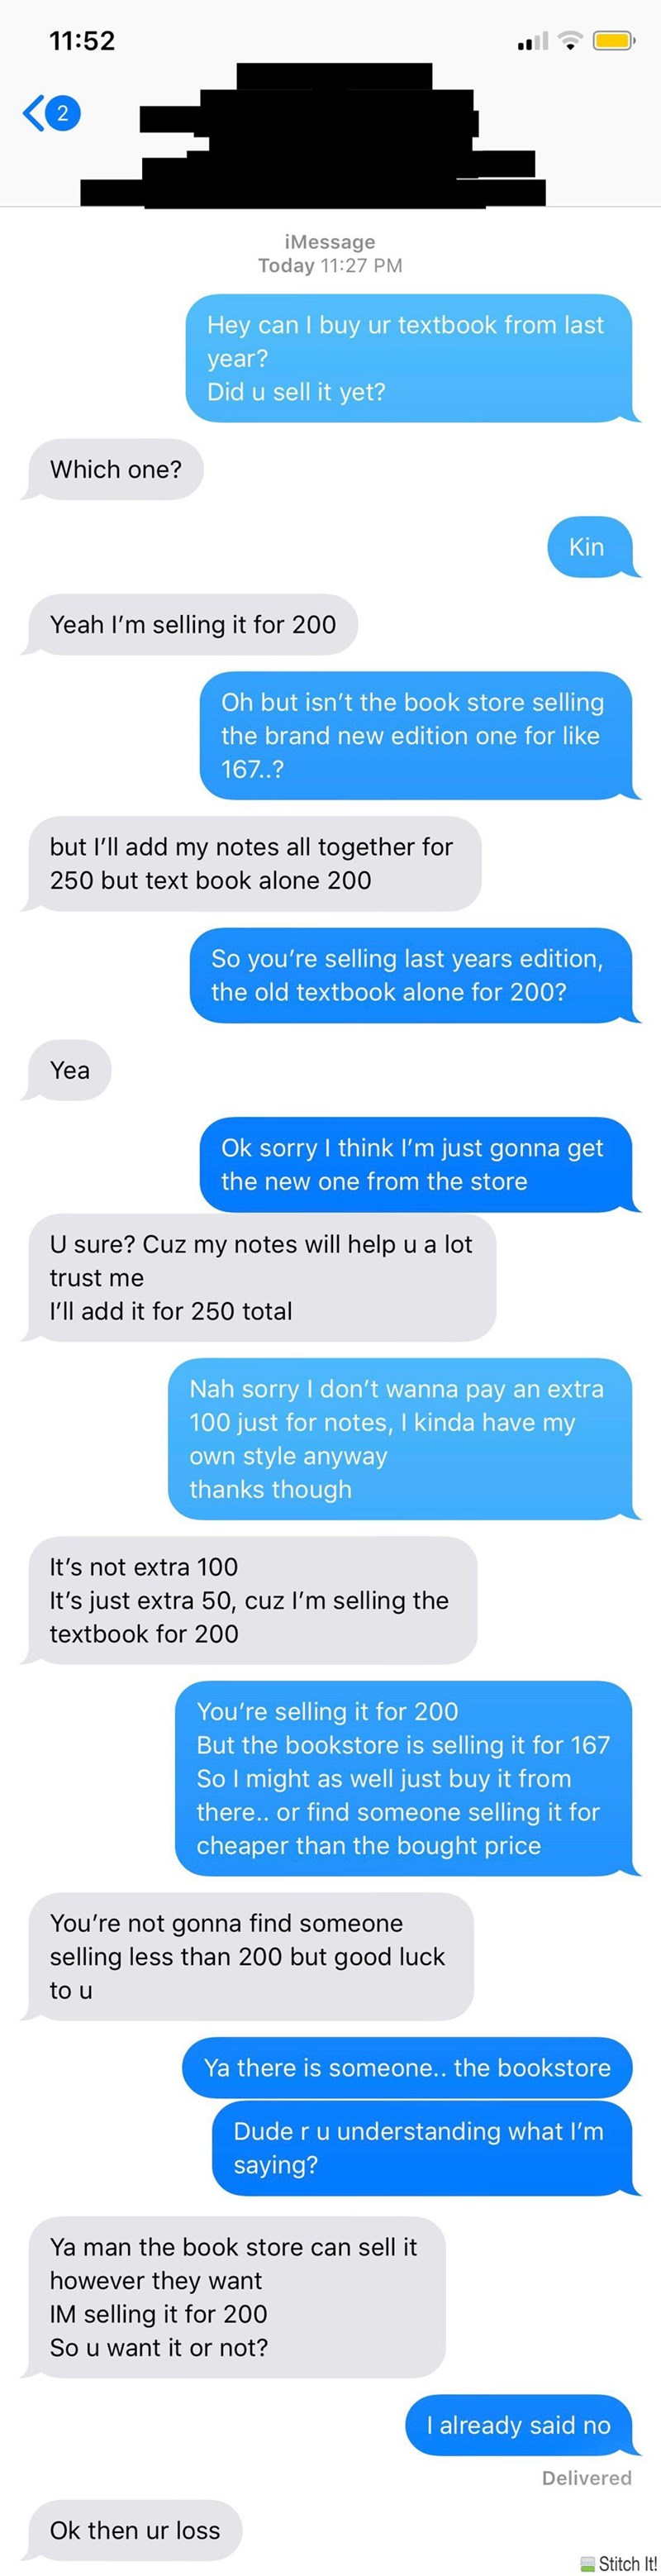 Text - 11:52 2 iMessage Today 11:27 PM Hey can I buy ur textbook from last year? Did u sell it yet? Which one? Kin Yeah I'm selling it for 200 Oh but isn't the book store selling the brand new edition one for like 167.? but I'll add my notes all together for 250 but text book alone 200 So you're selling last years edition, the old textbook alone for 200? Yea Ok sorry I think I'm just gonna get the new one from the store U sure? Cuz my notes will help u a lot trust me I'll add it for 250 total Na